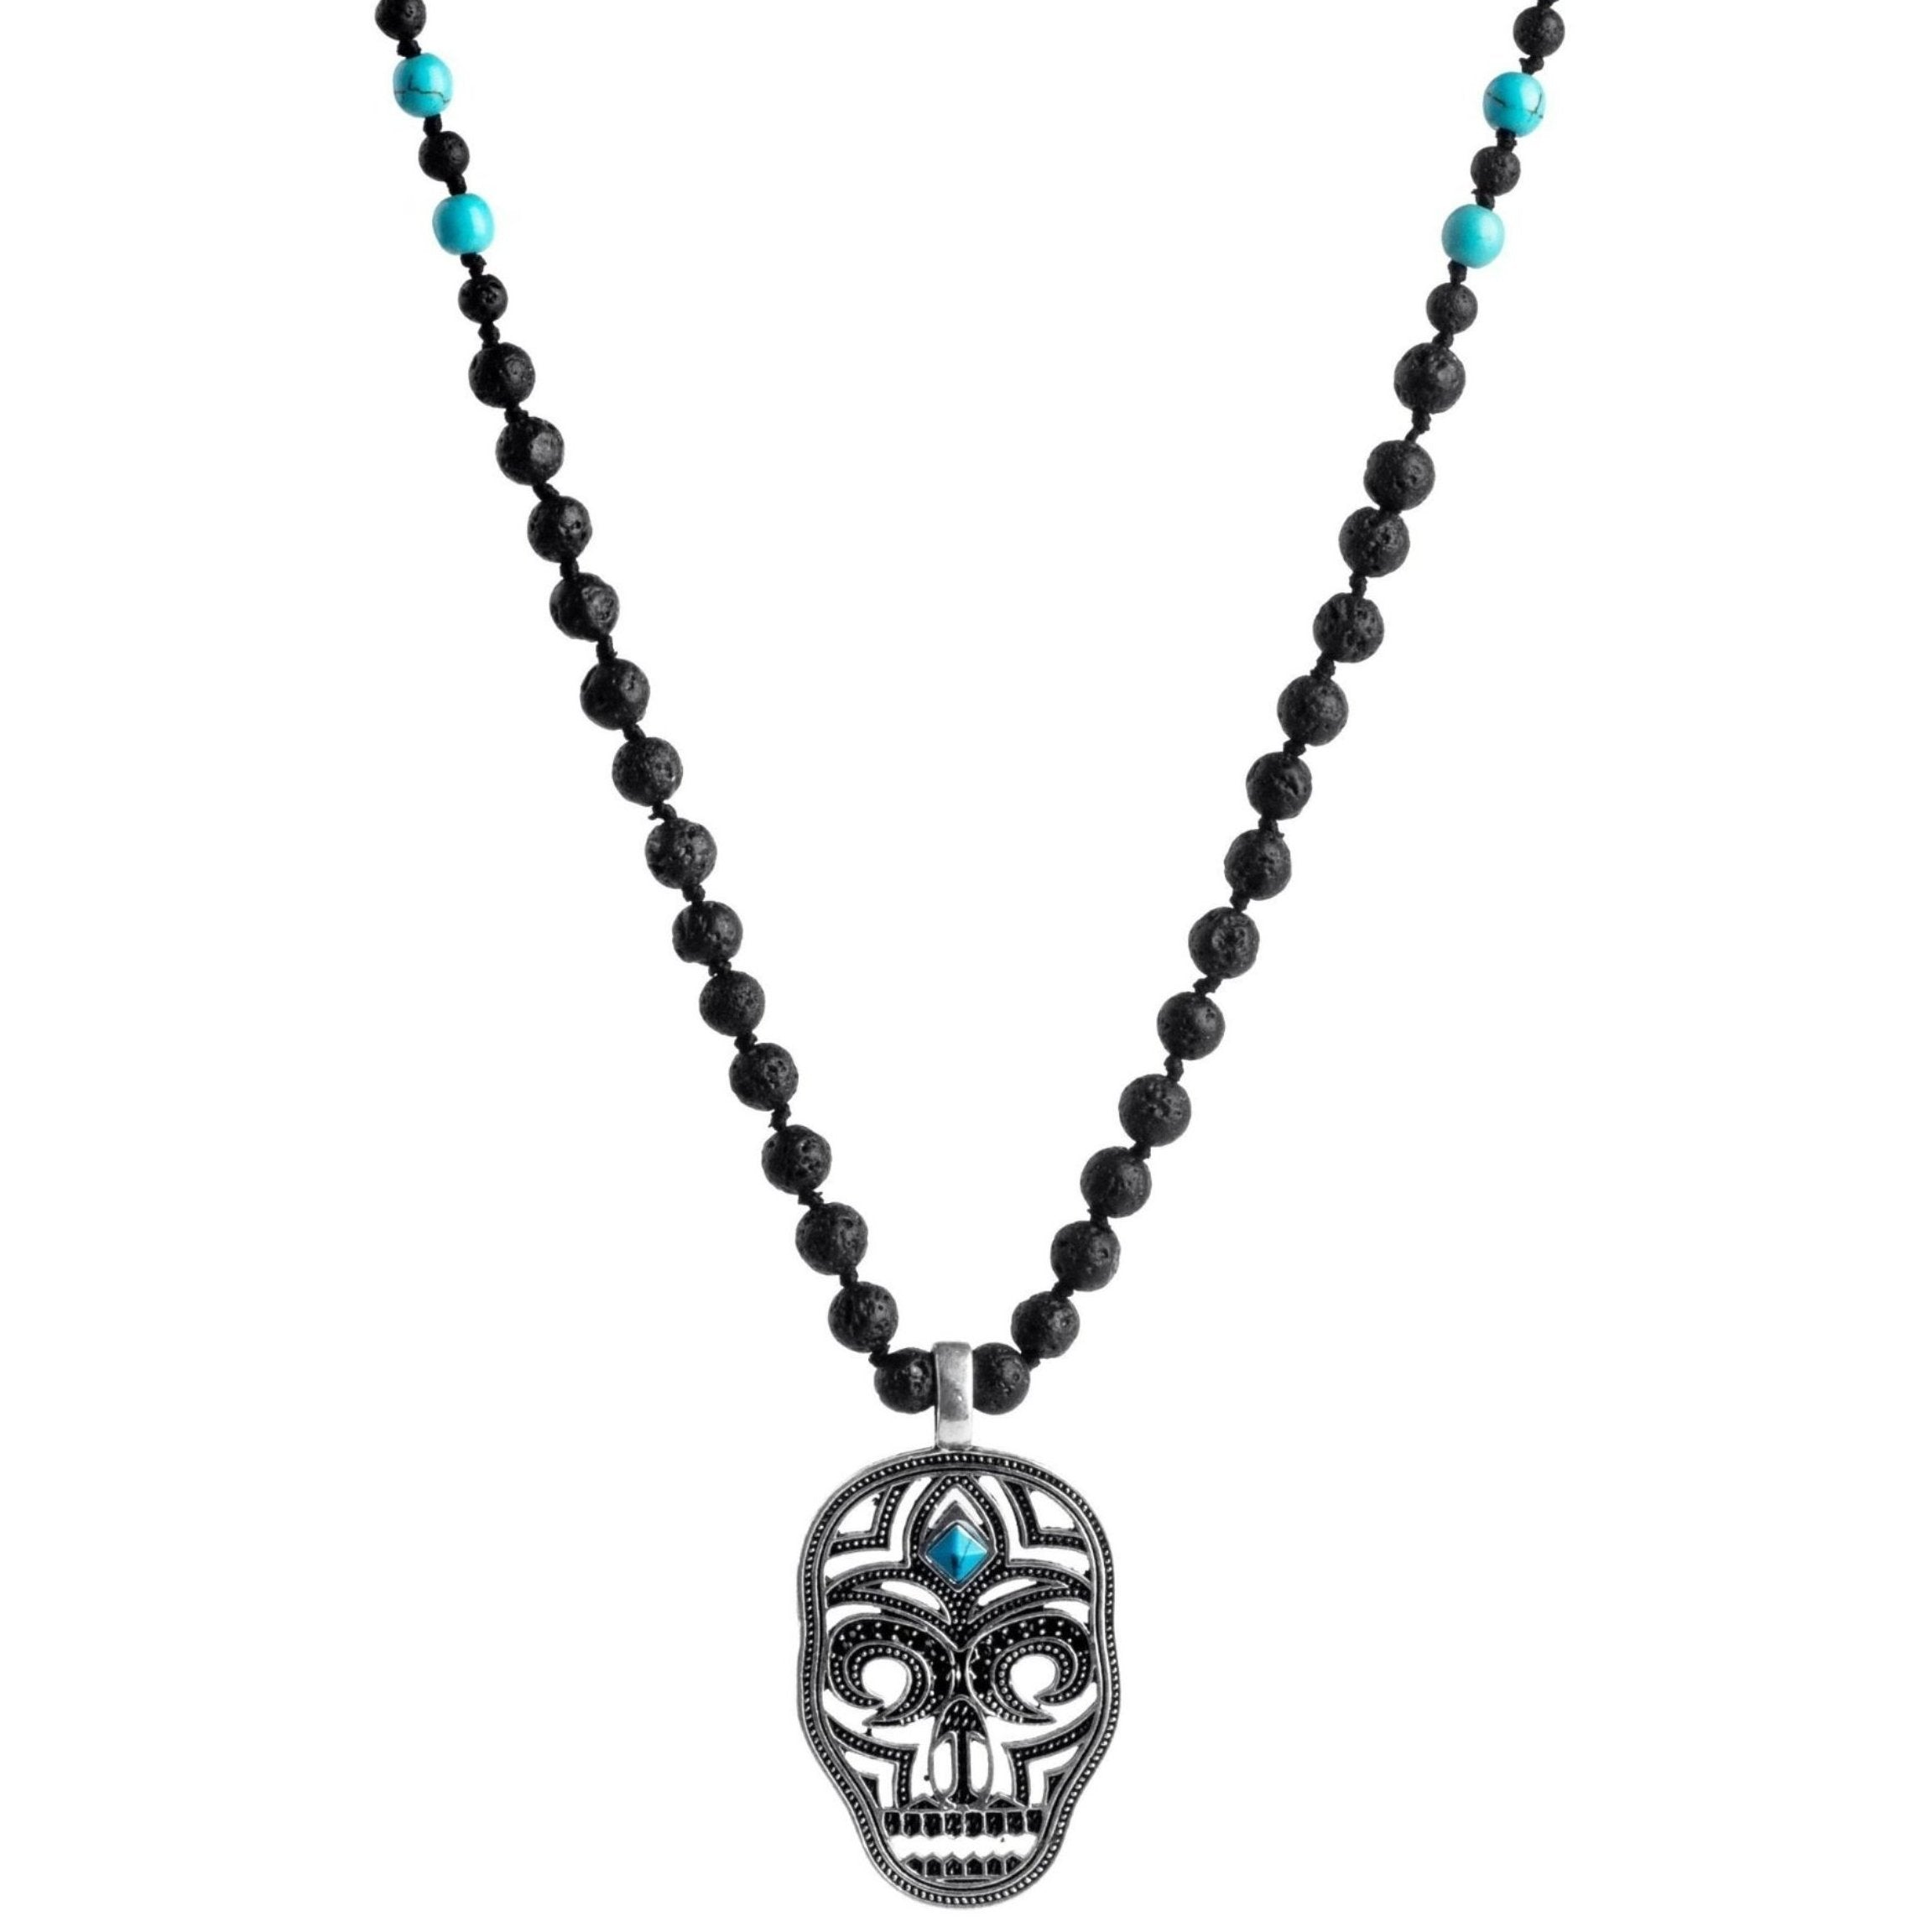 The Muerte Necklace